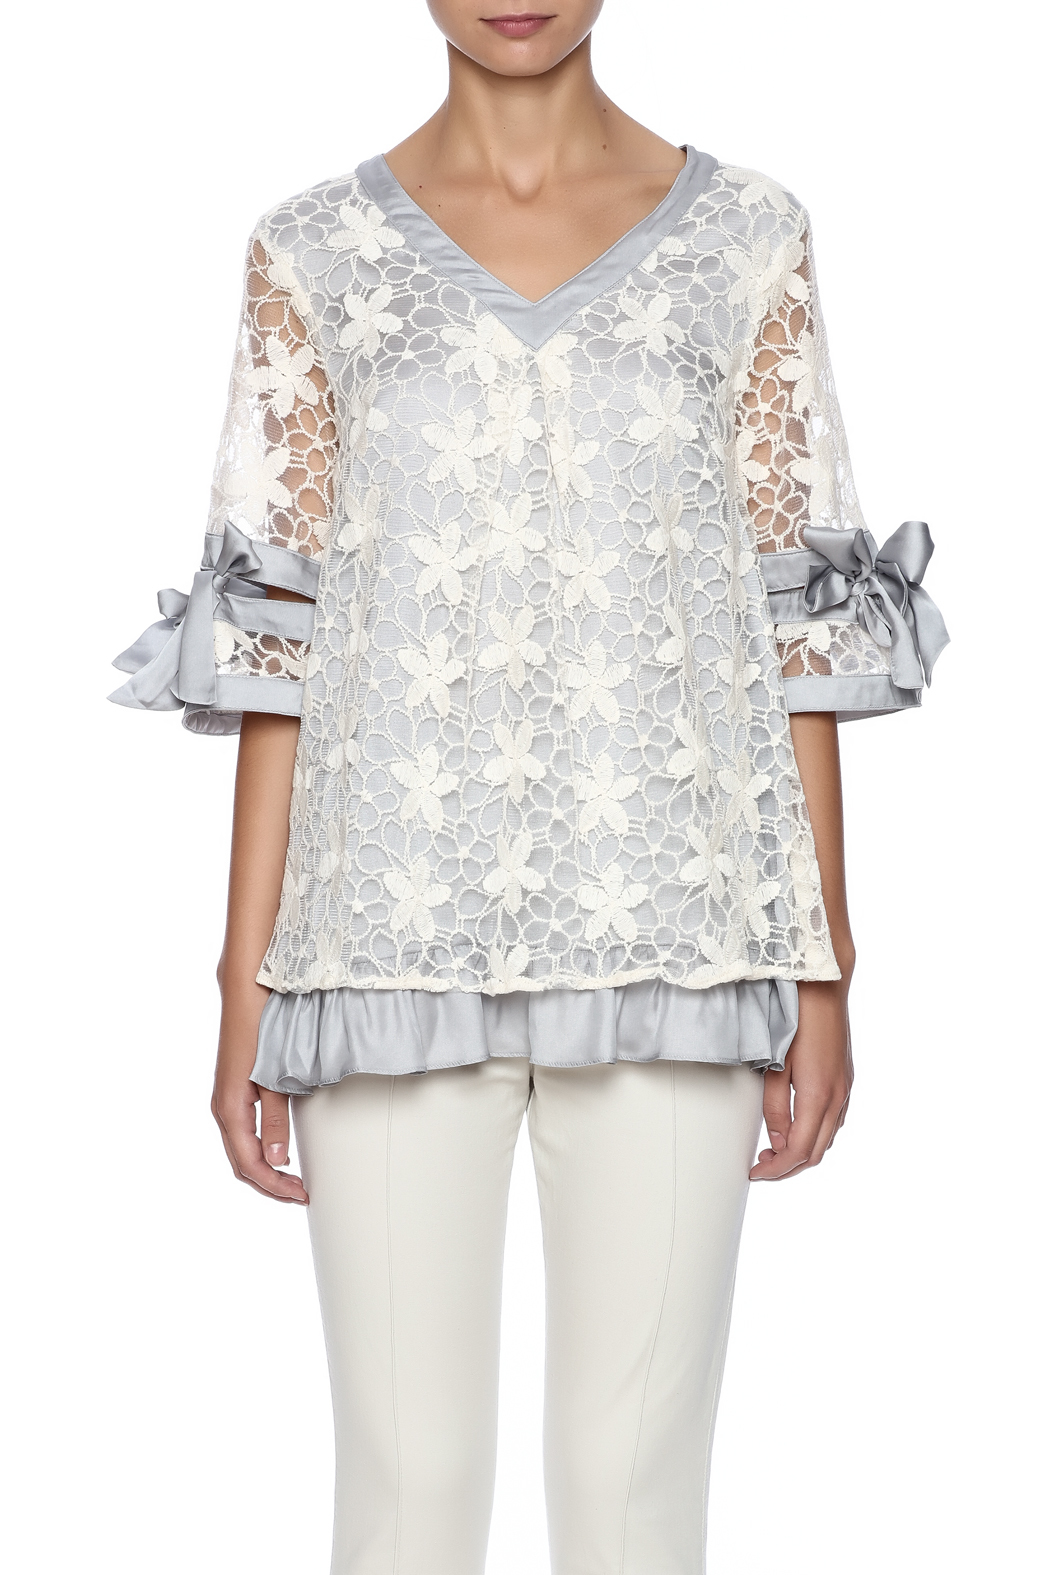 Ryu Dreamy Lace Overlay Top - Side Cropped Image